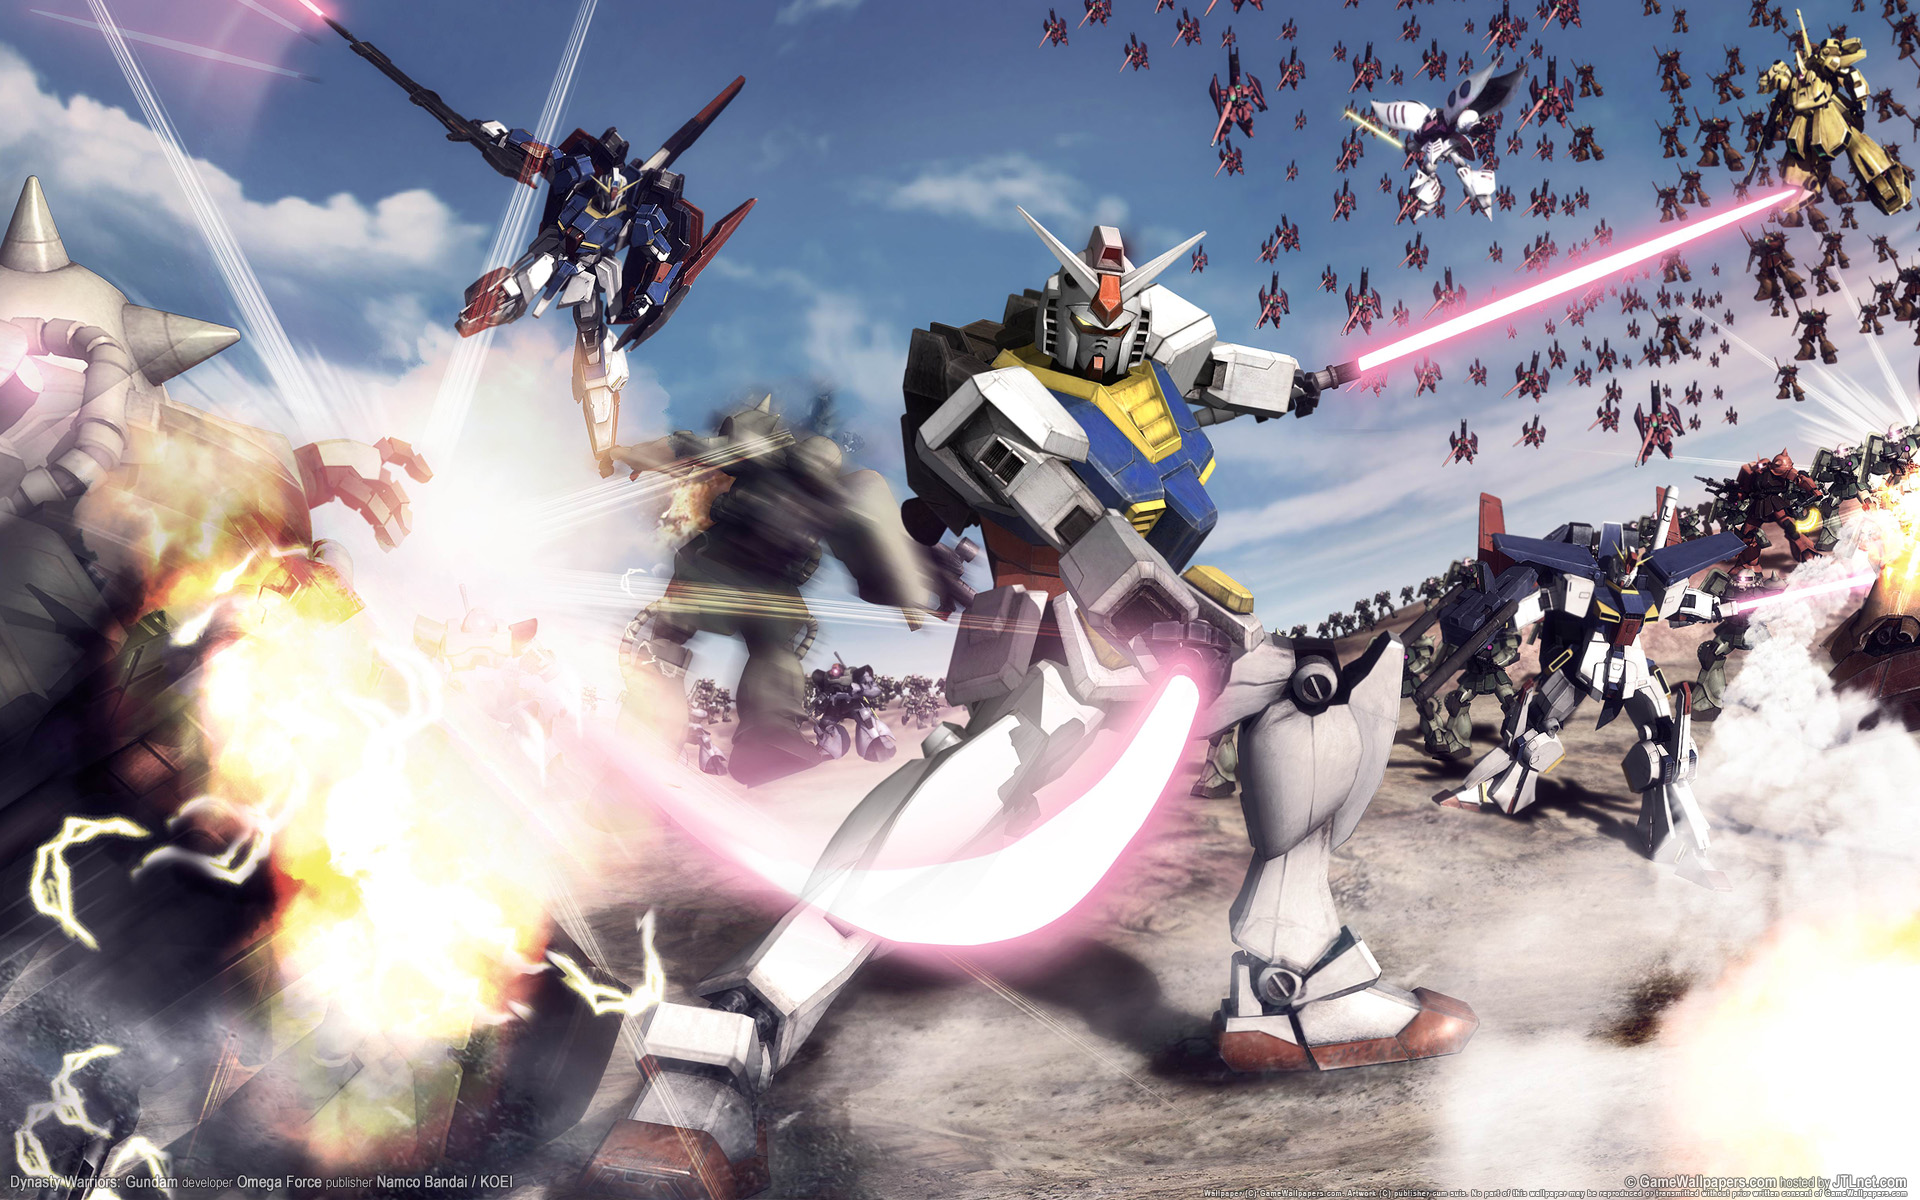 Gundam 4k Wallpapers For Your Desktop Or Mobile Screen Free And Easy To Download